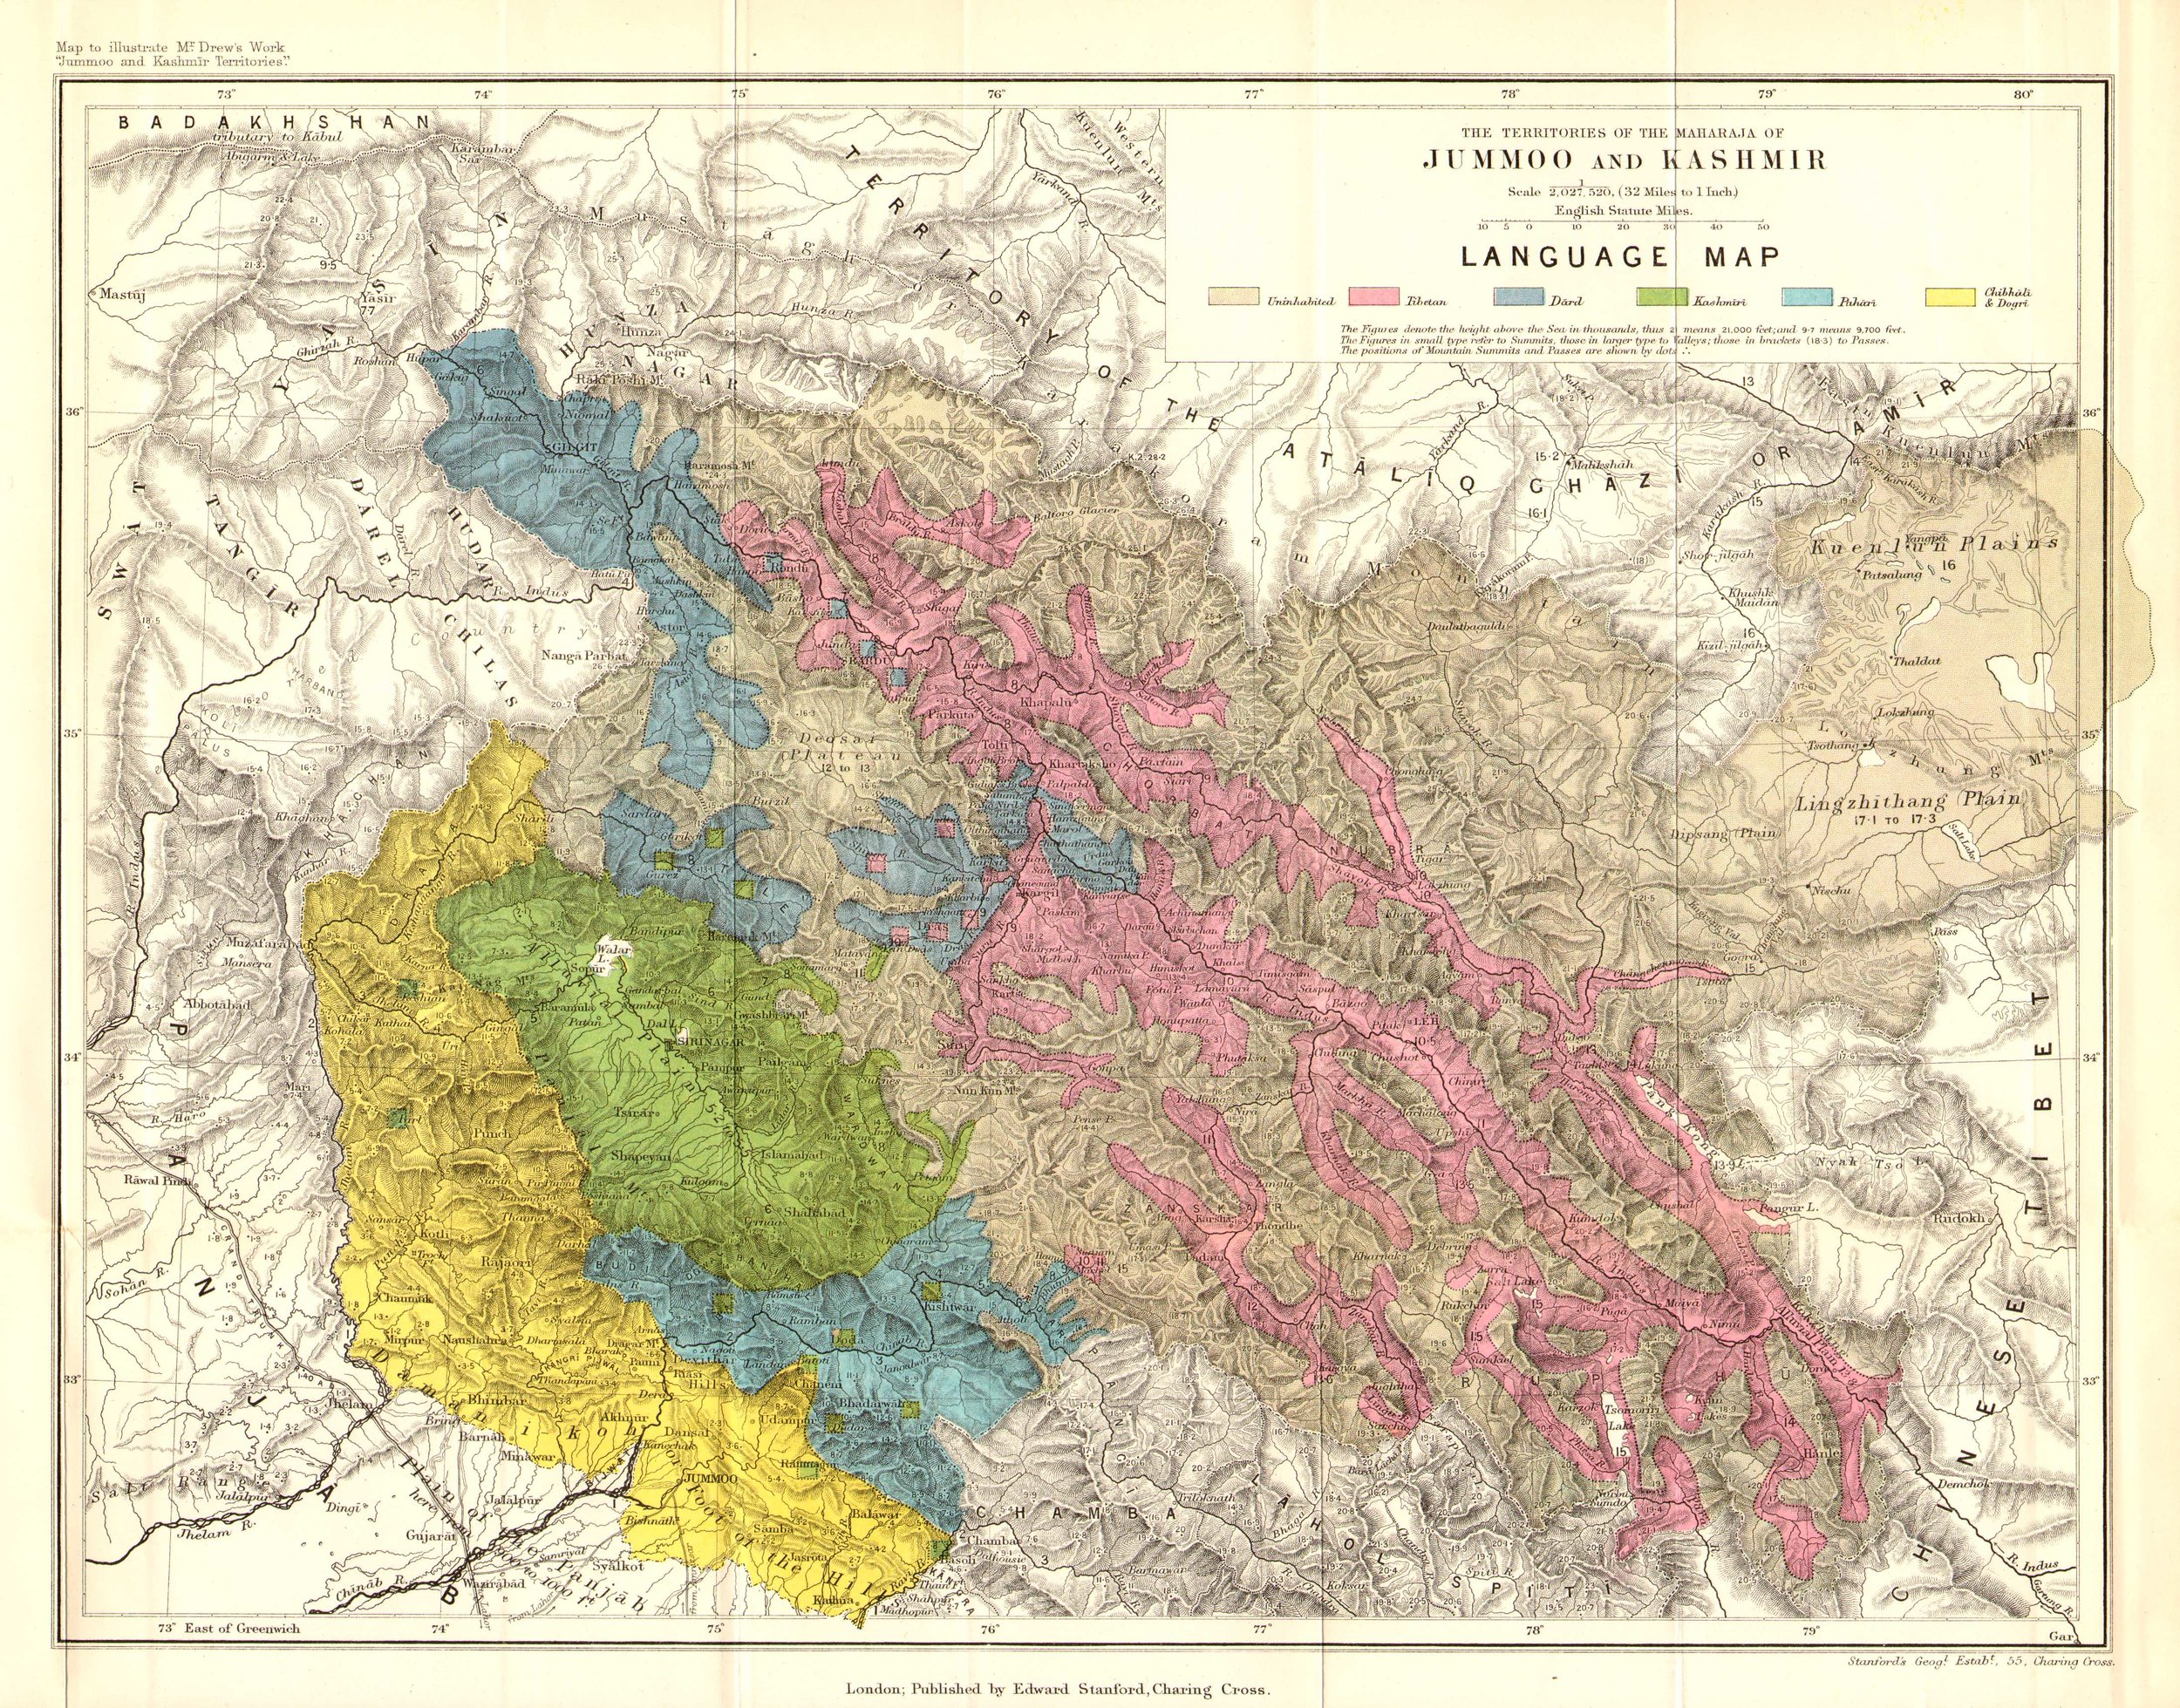 1875 Jummoo and Kashmir Language Map by Drew.jpg